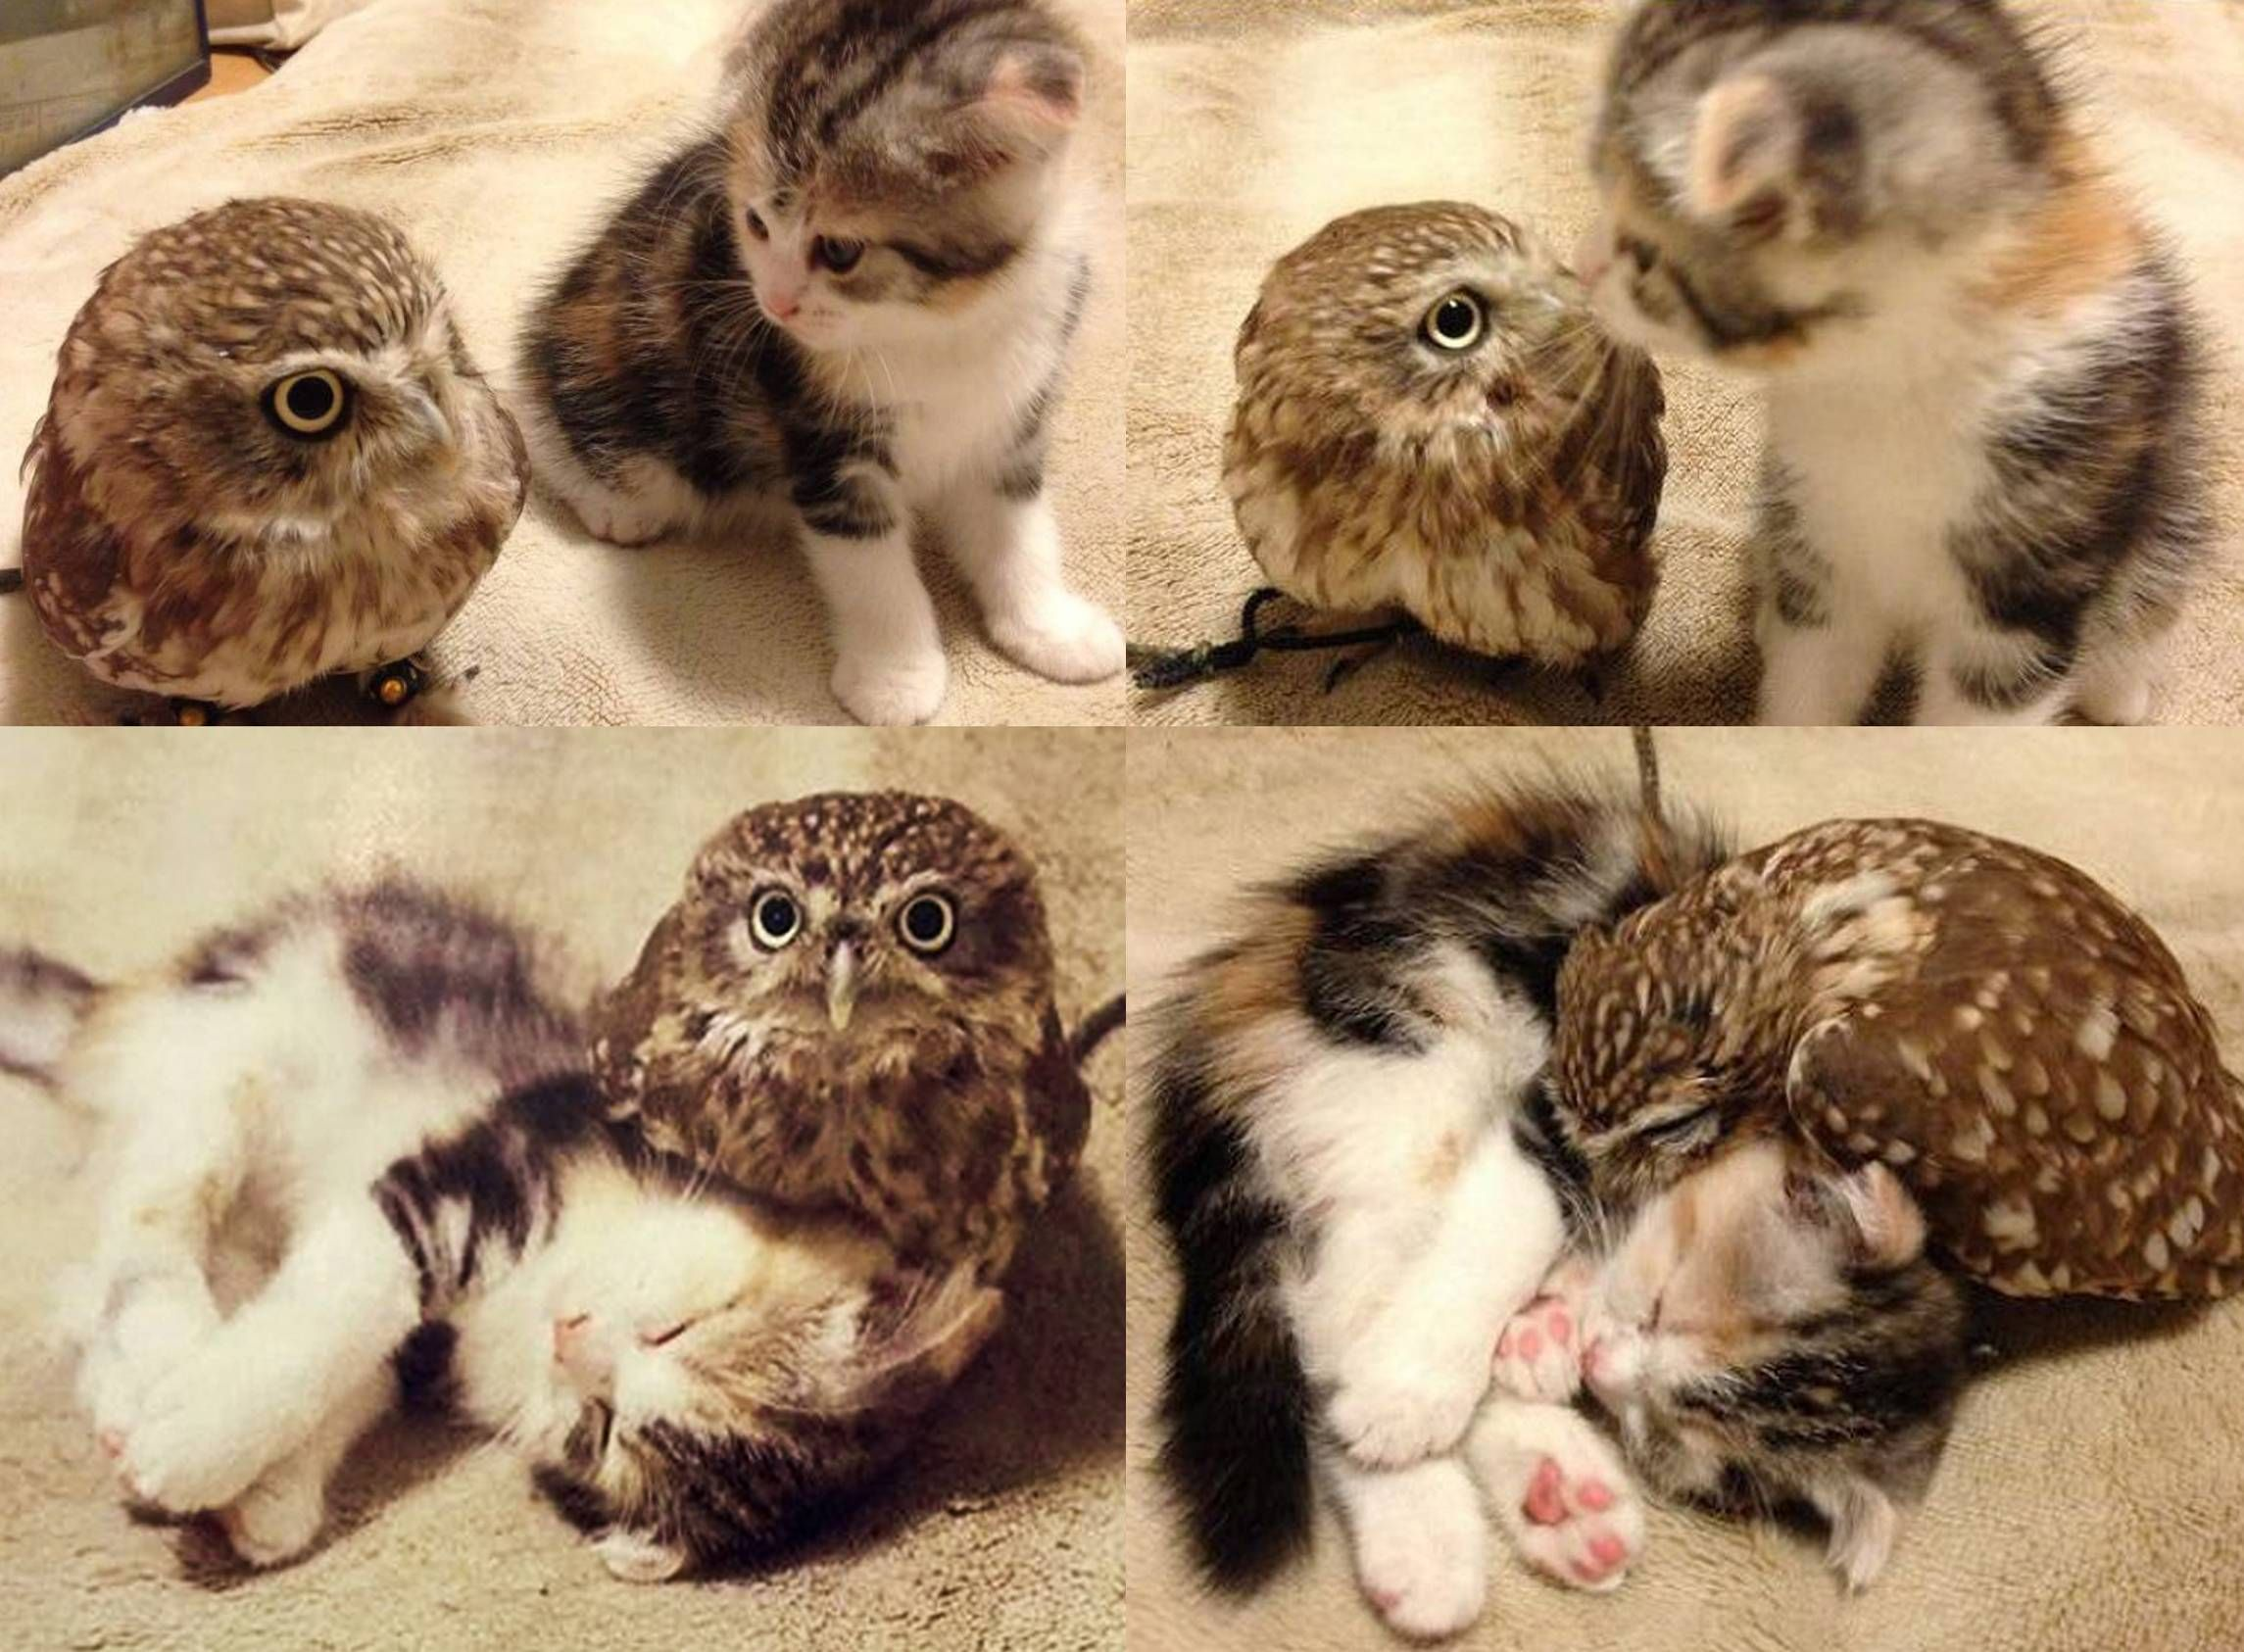 Little Owl And Baby Kitten Built An Unlikely Friendship In A Japanese Coffee Shop Imgur Kitten Pictures Cute Animals Cute Baby Animals